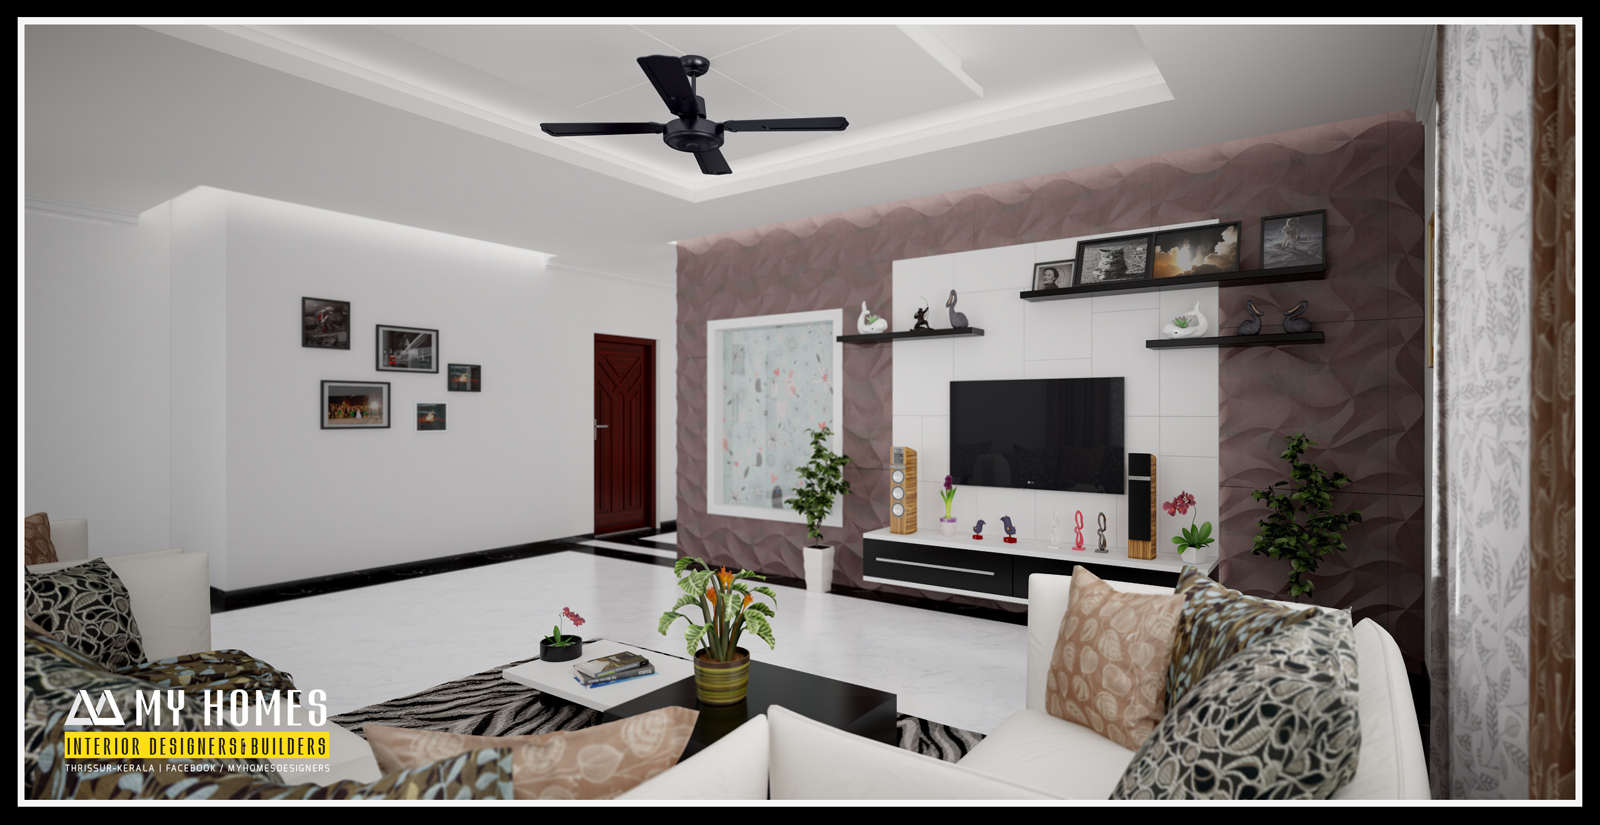 home designs latestmodern dream house exterior designs house interior design ideas Latest trends living room designs in kerala india · 3D Designs - Home  Interior - Modern Home Designs. kerala home interior design